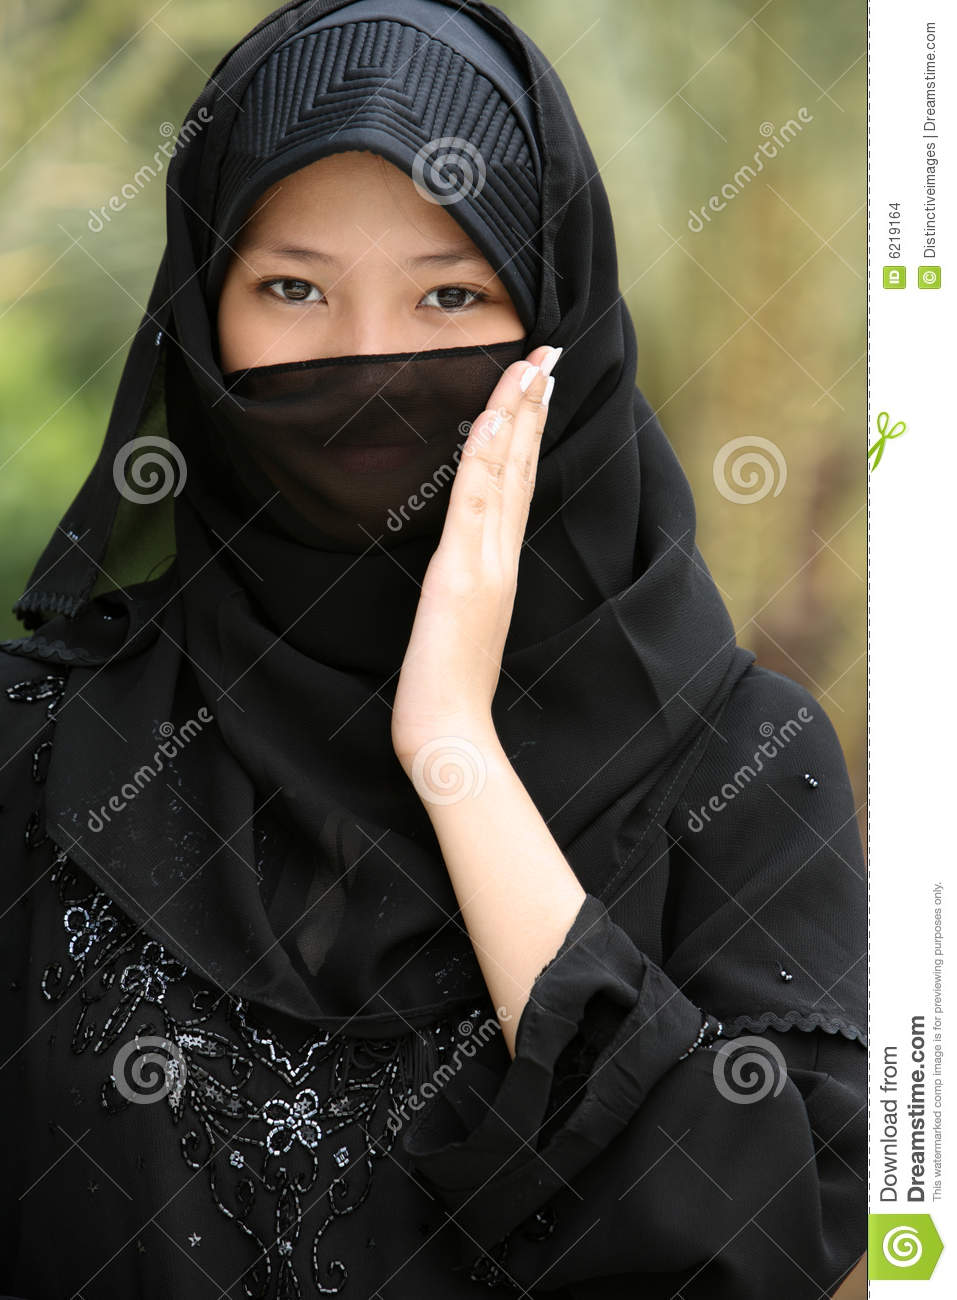 jodie muslim girl personals Meet muslim women and find your true love at muslimacom sign up today and browse profiles of muslim women for freelink value.